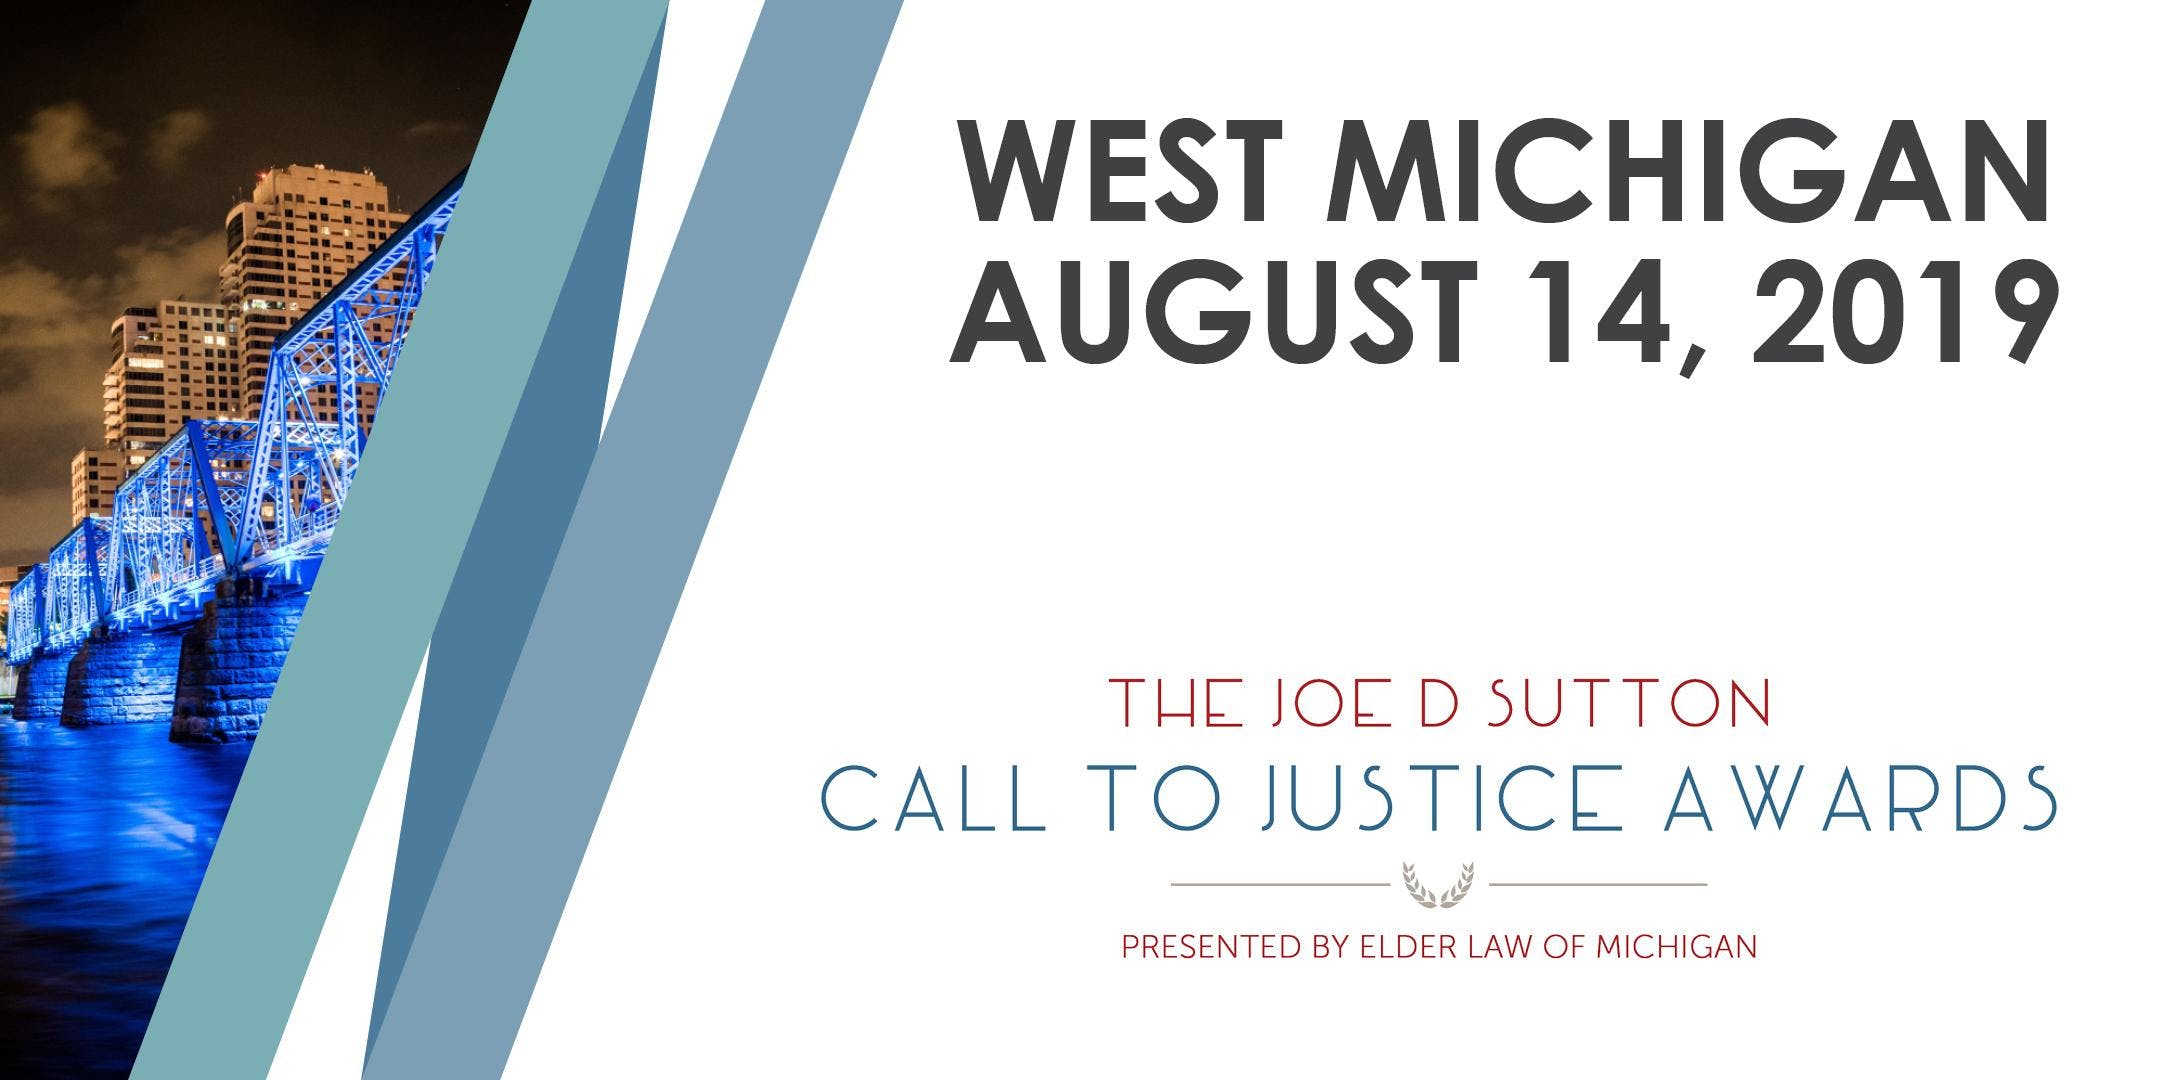 The Joe D. Sutton Call to Justice Awards - West Michigan Event, Wednesday, August 14, 2019 banner